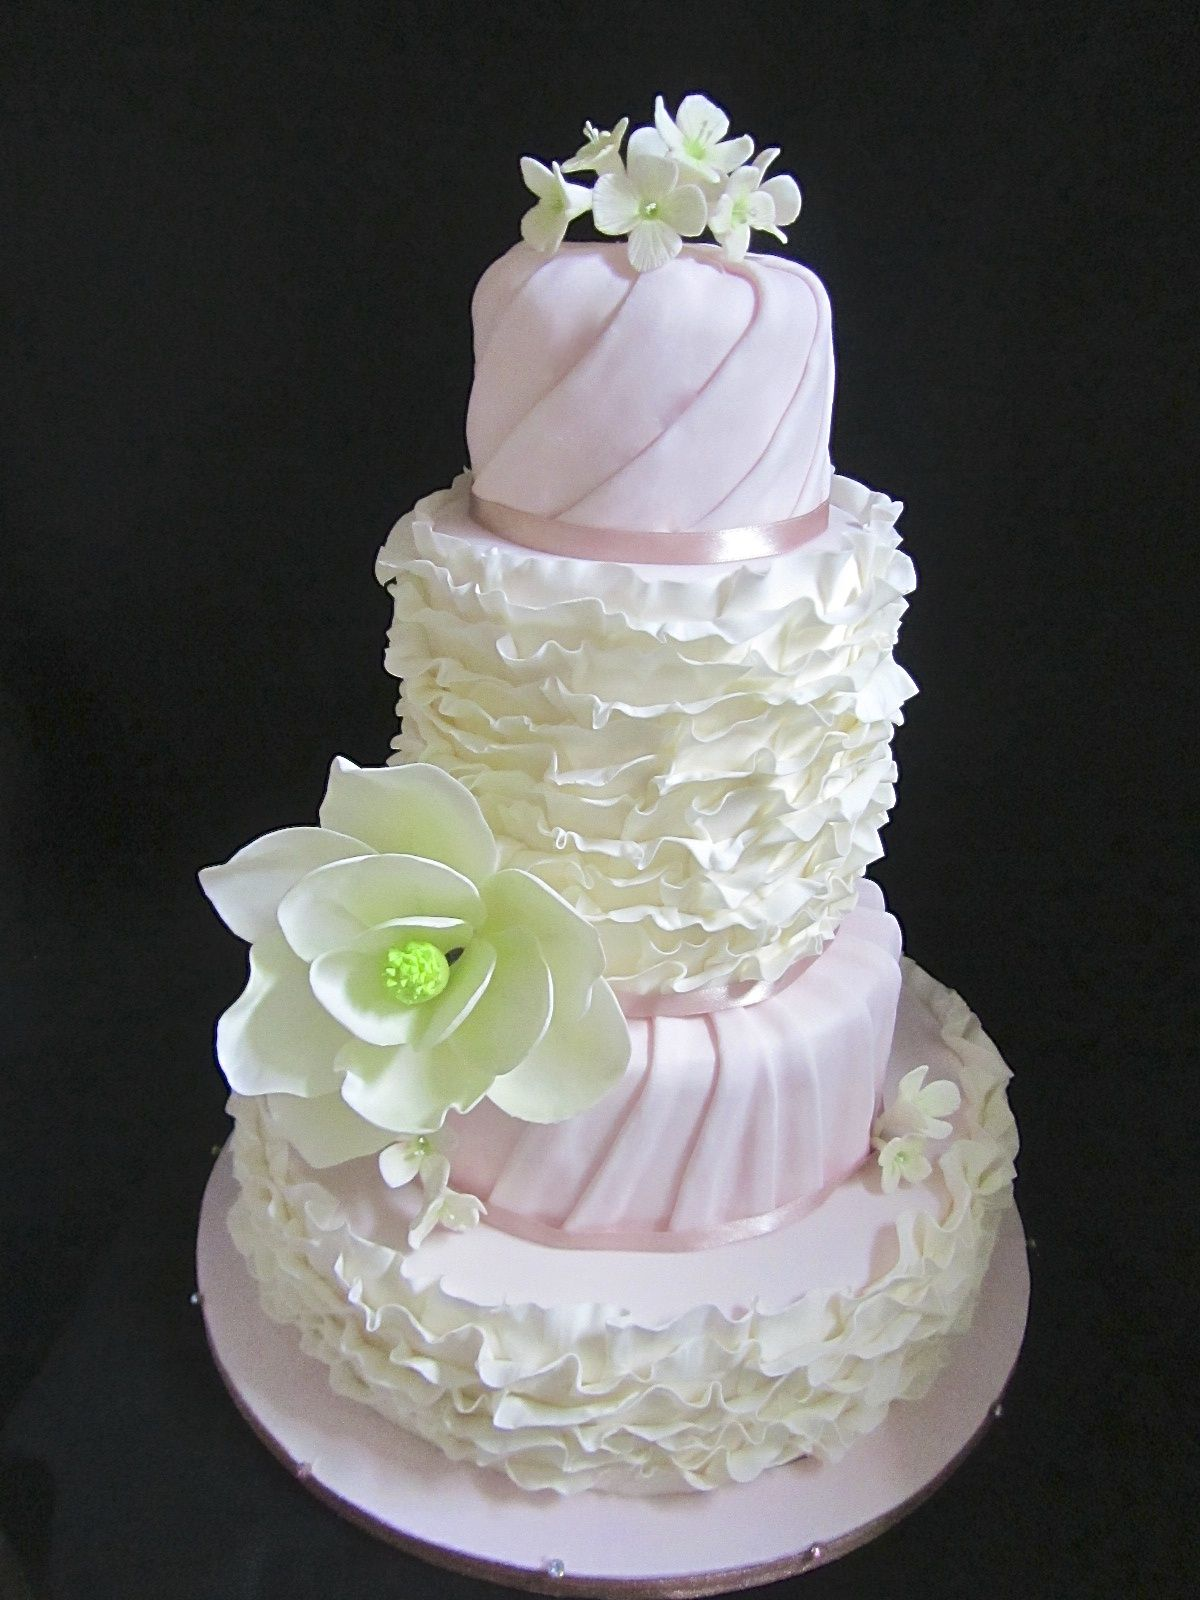 Pink and Ivory. Sweet and dreamy wedding cake with ruffles and fondant magnolia.